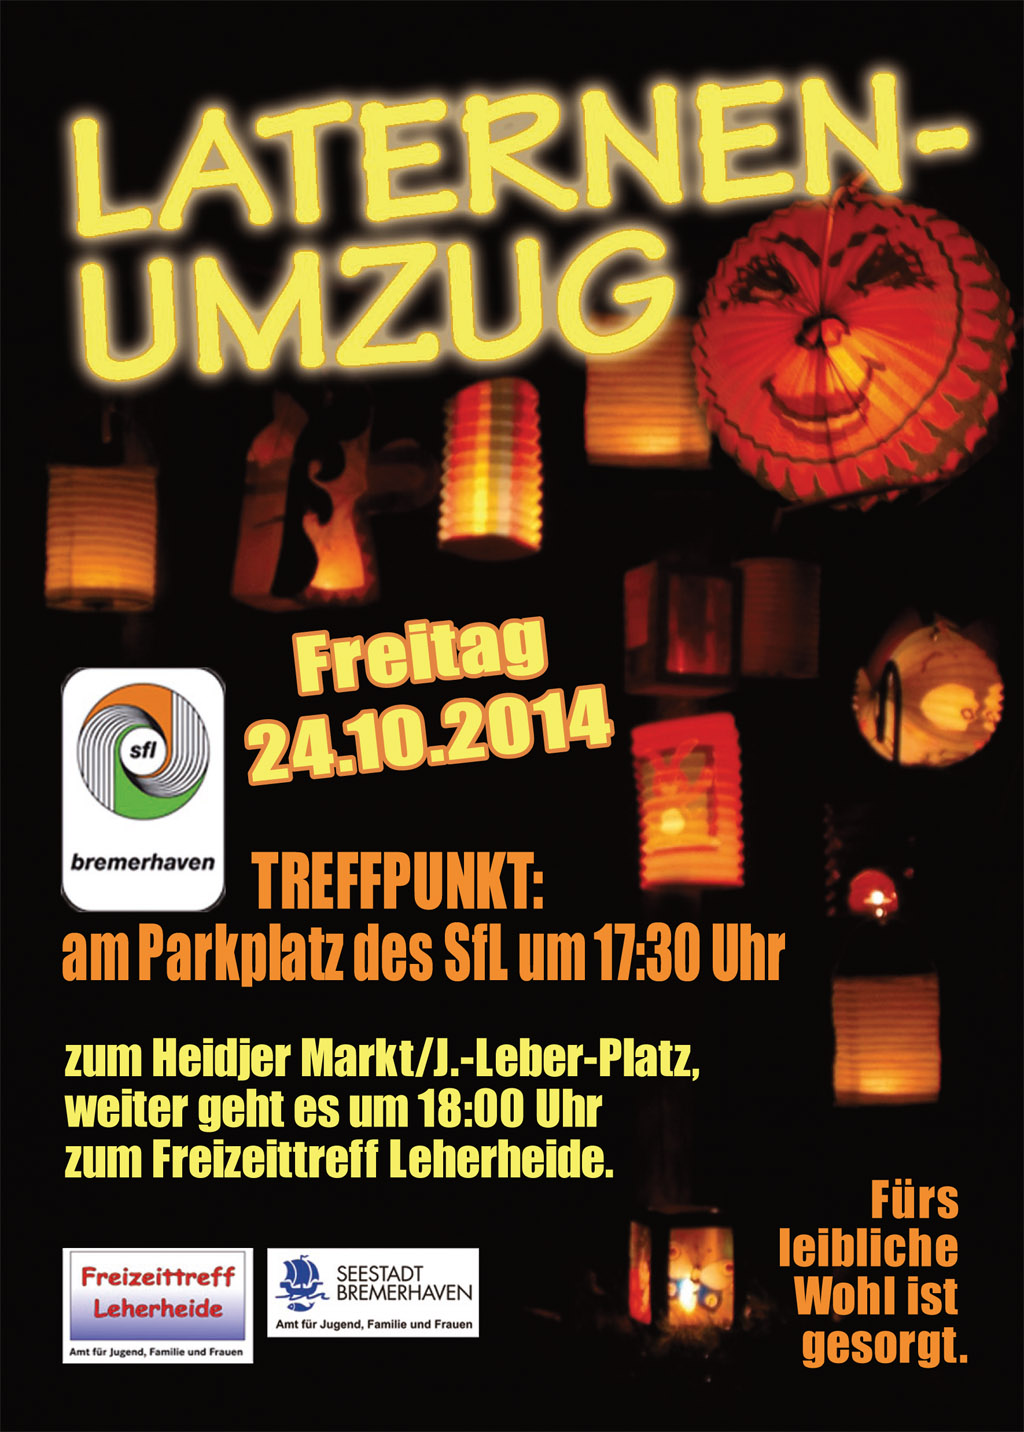 Flyer-LaternenUmzug2014